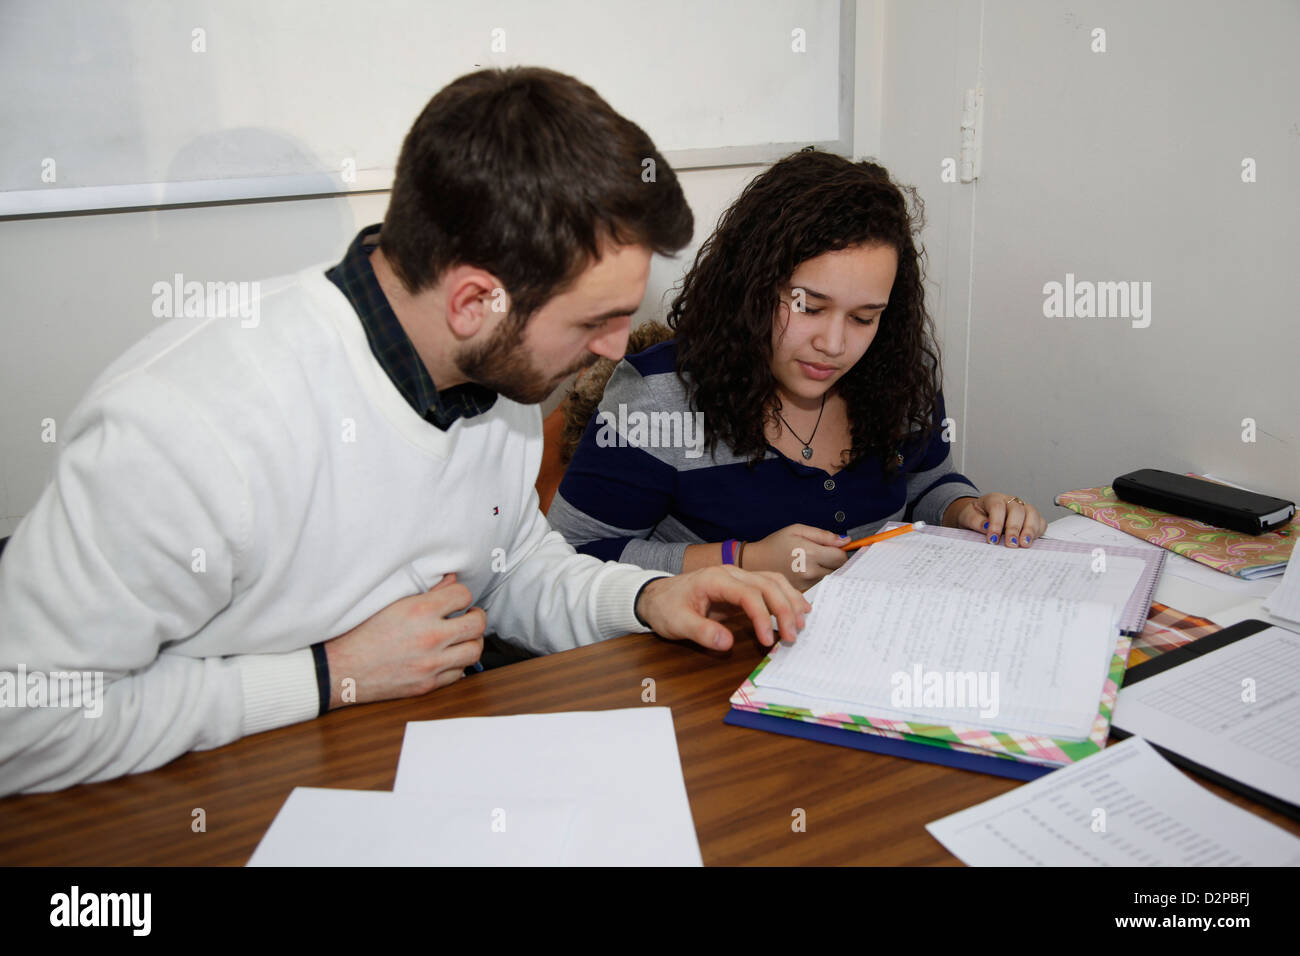 Academic tutor works with a high school student preparing for college. Lower East Side community center, Manhattan. - Stock Image